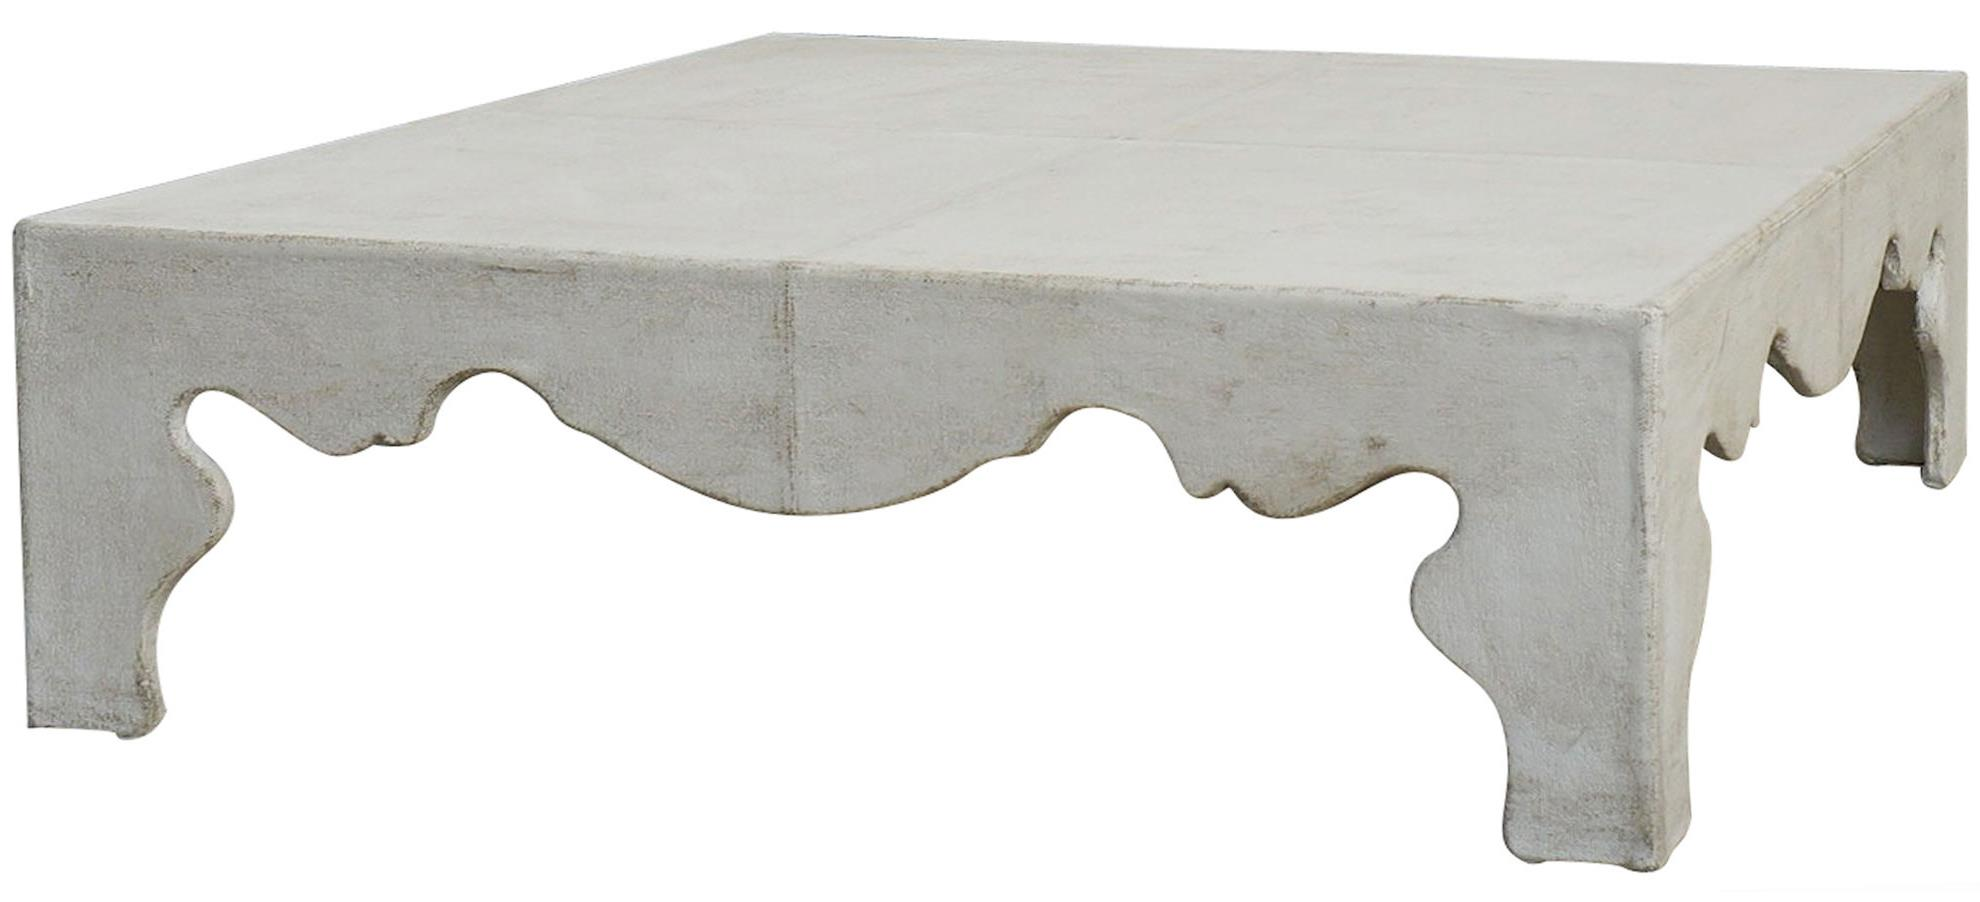 Four Hands Irondale Serena Coffee Table - Item Number: CIRD-G3L7-L7